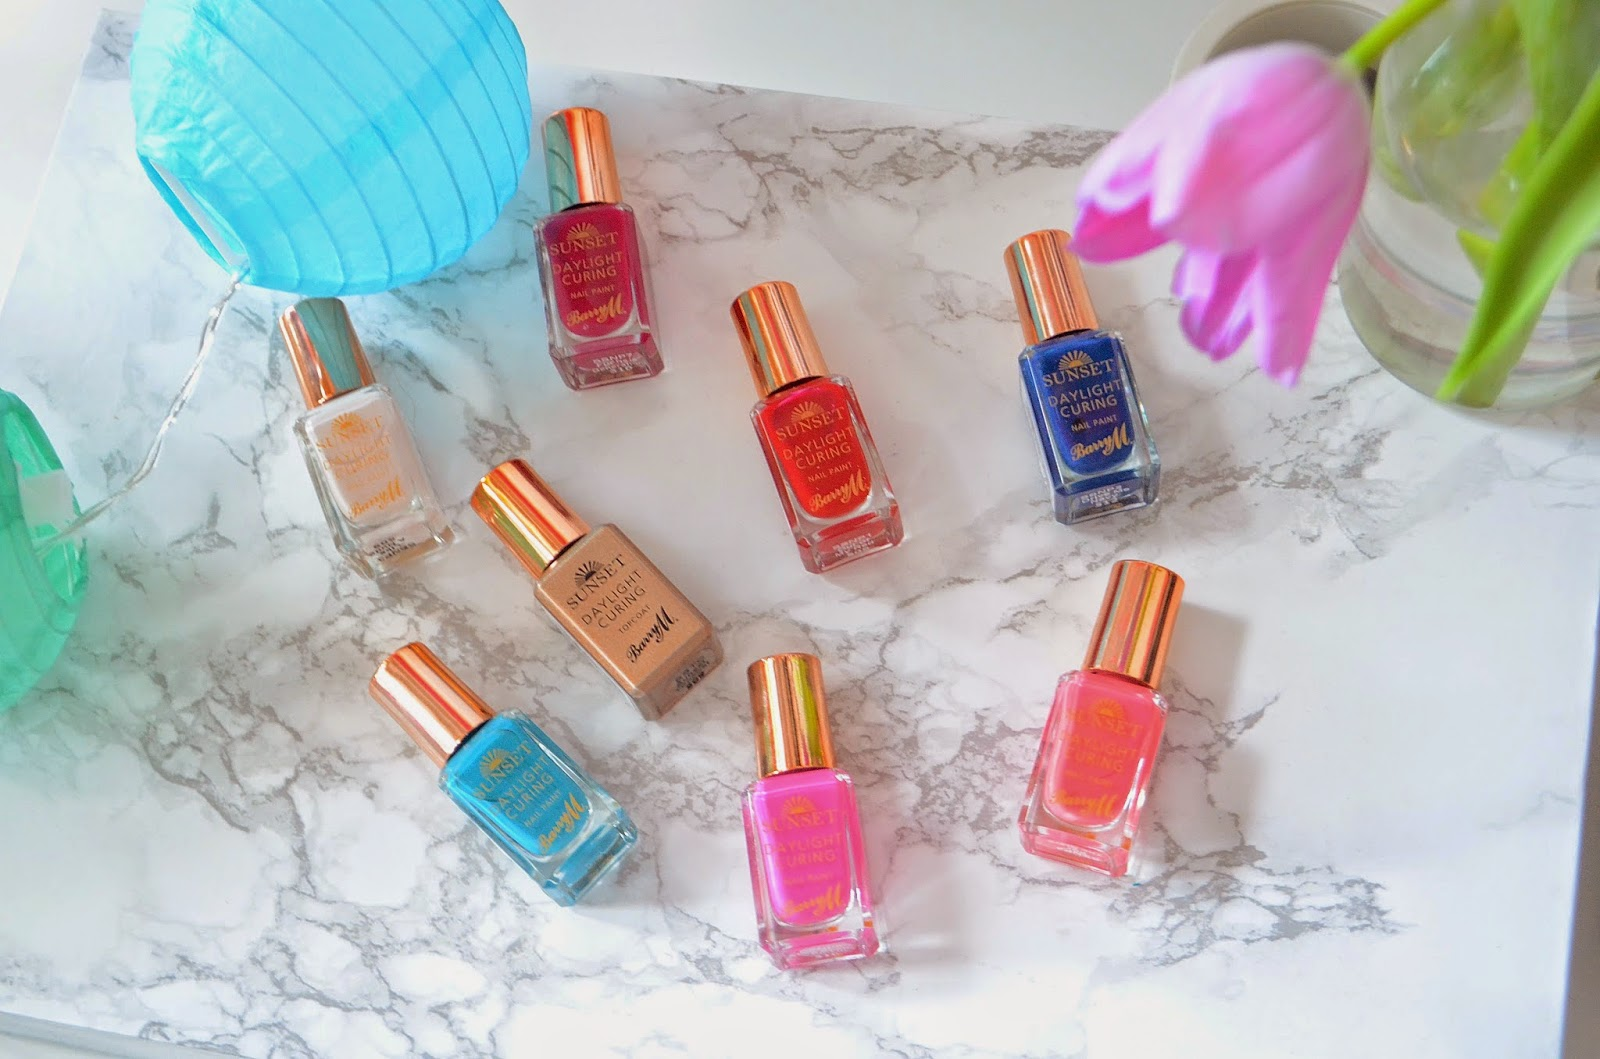 Barry M Sunset Nail Paint Range, Barry M, Barry M Nail Paint, Barry M Sunset collection review, DIY Gel nails at home, gel nails, how to do gel nails at home, nails, nail polish.